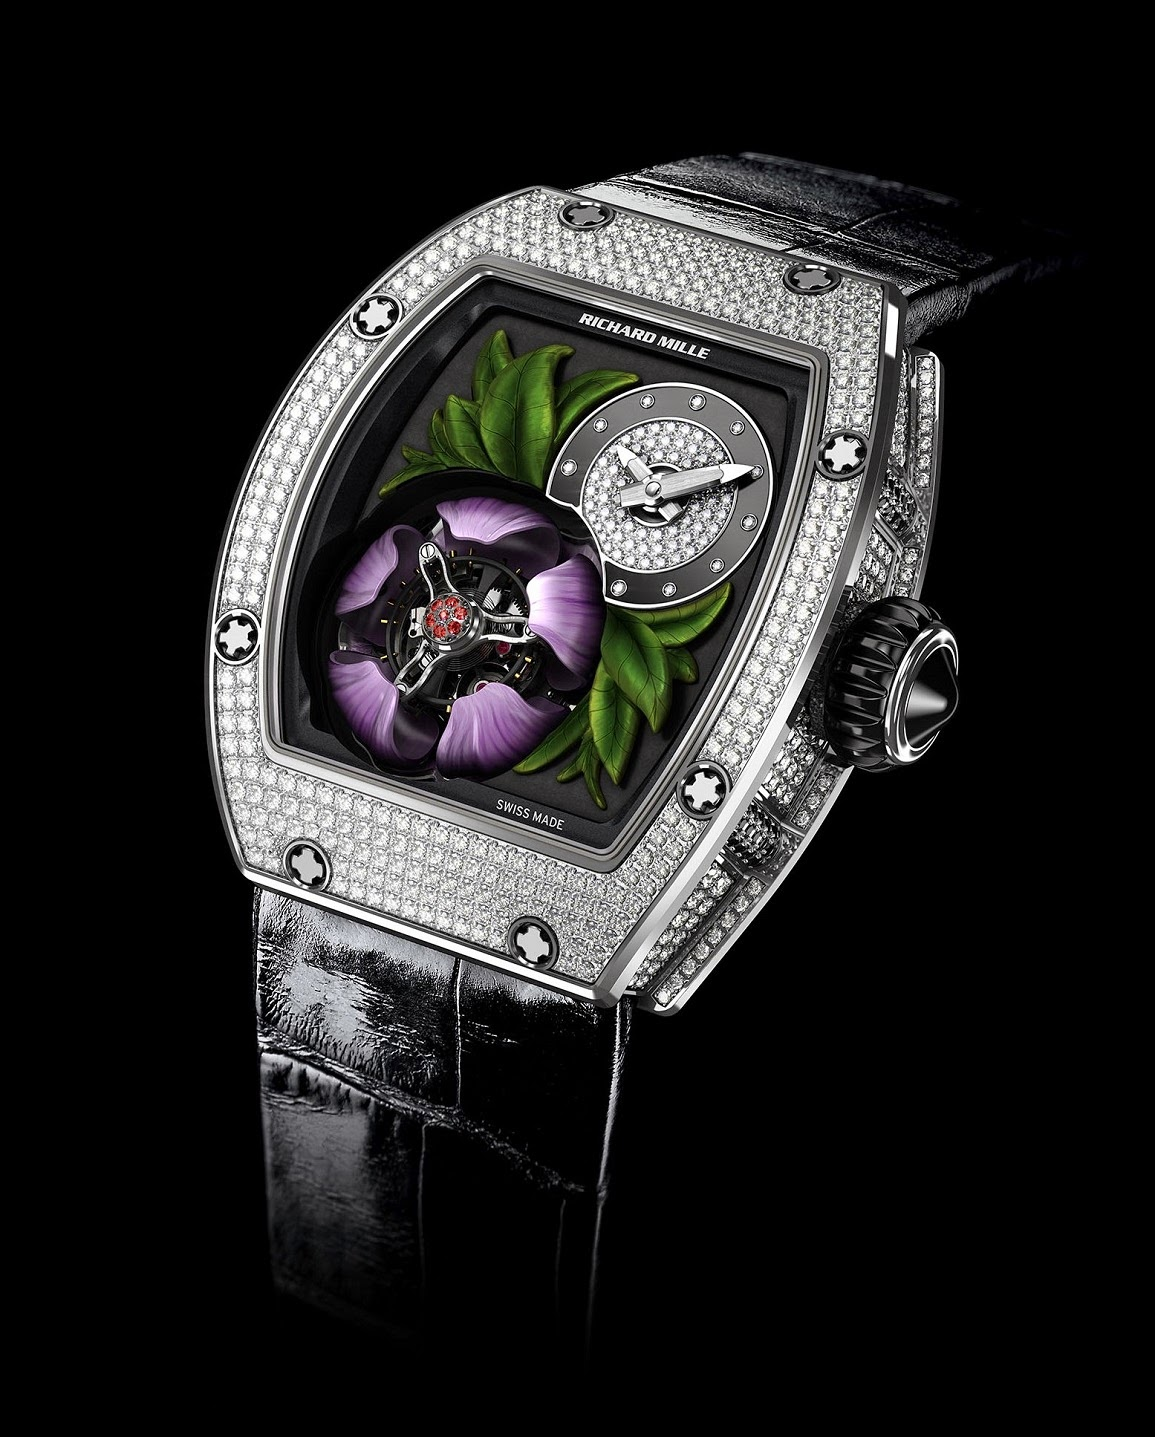 31003b966 To make this happen, the grade 5 titanium tourbillon caliber uses 5 levers  that surround the underside of the petals, with another system that uses a  long ...